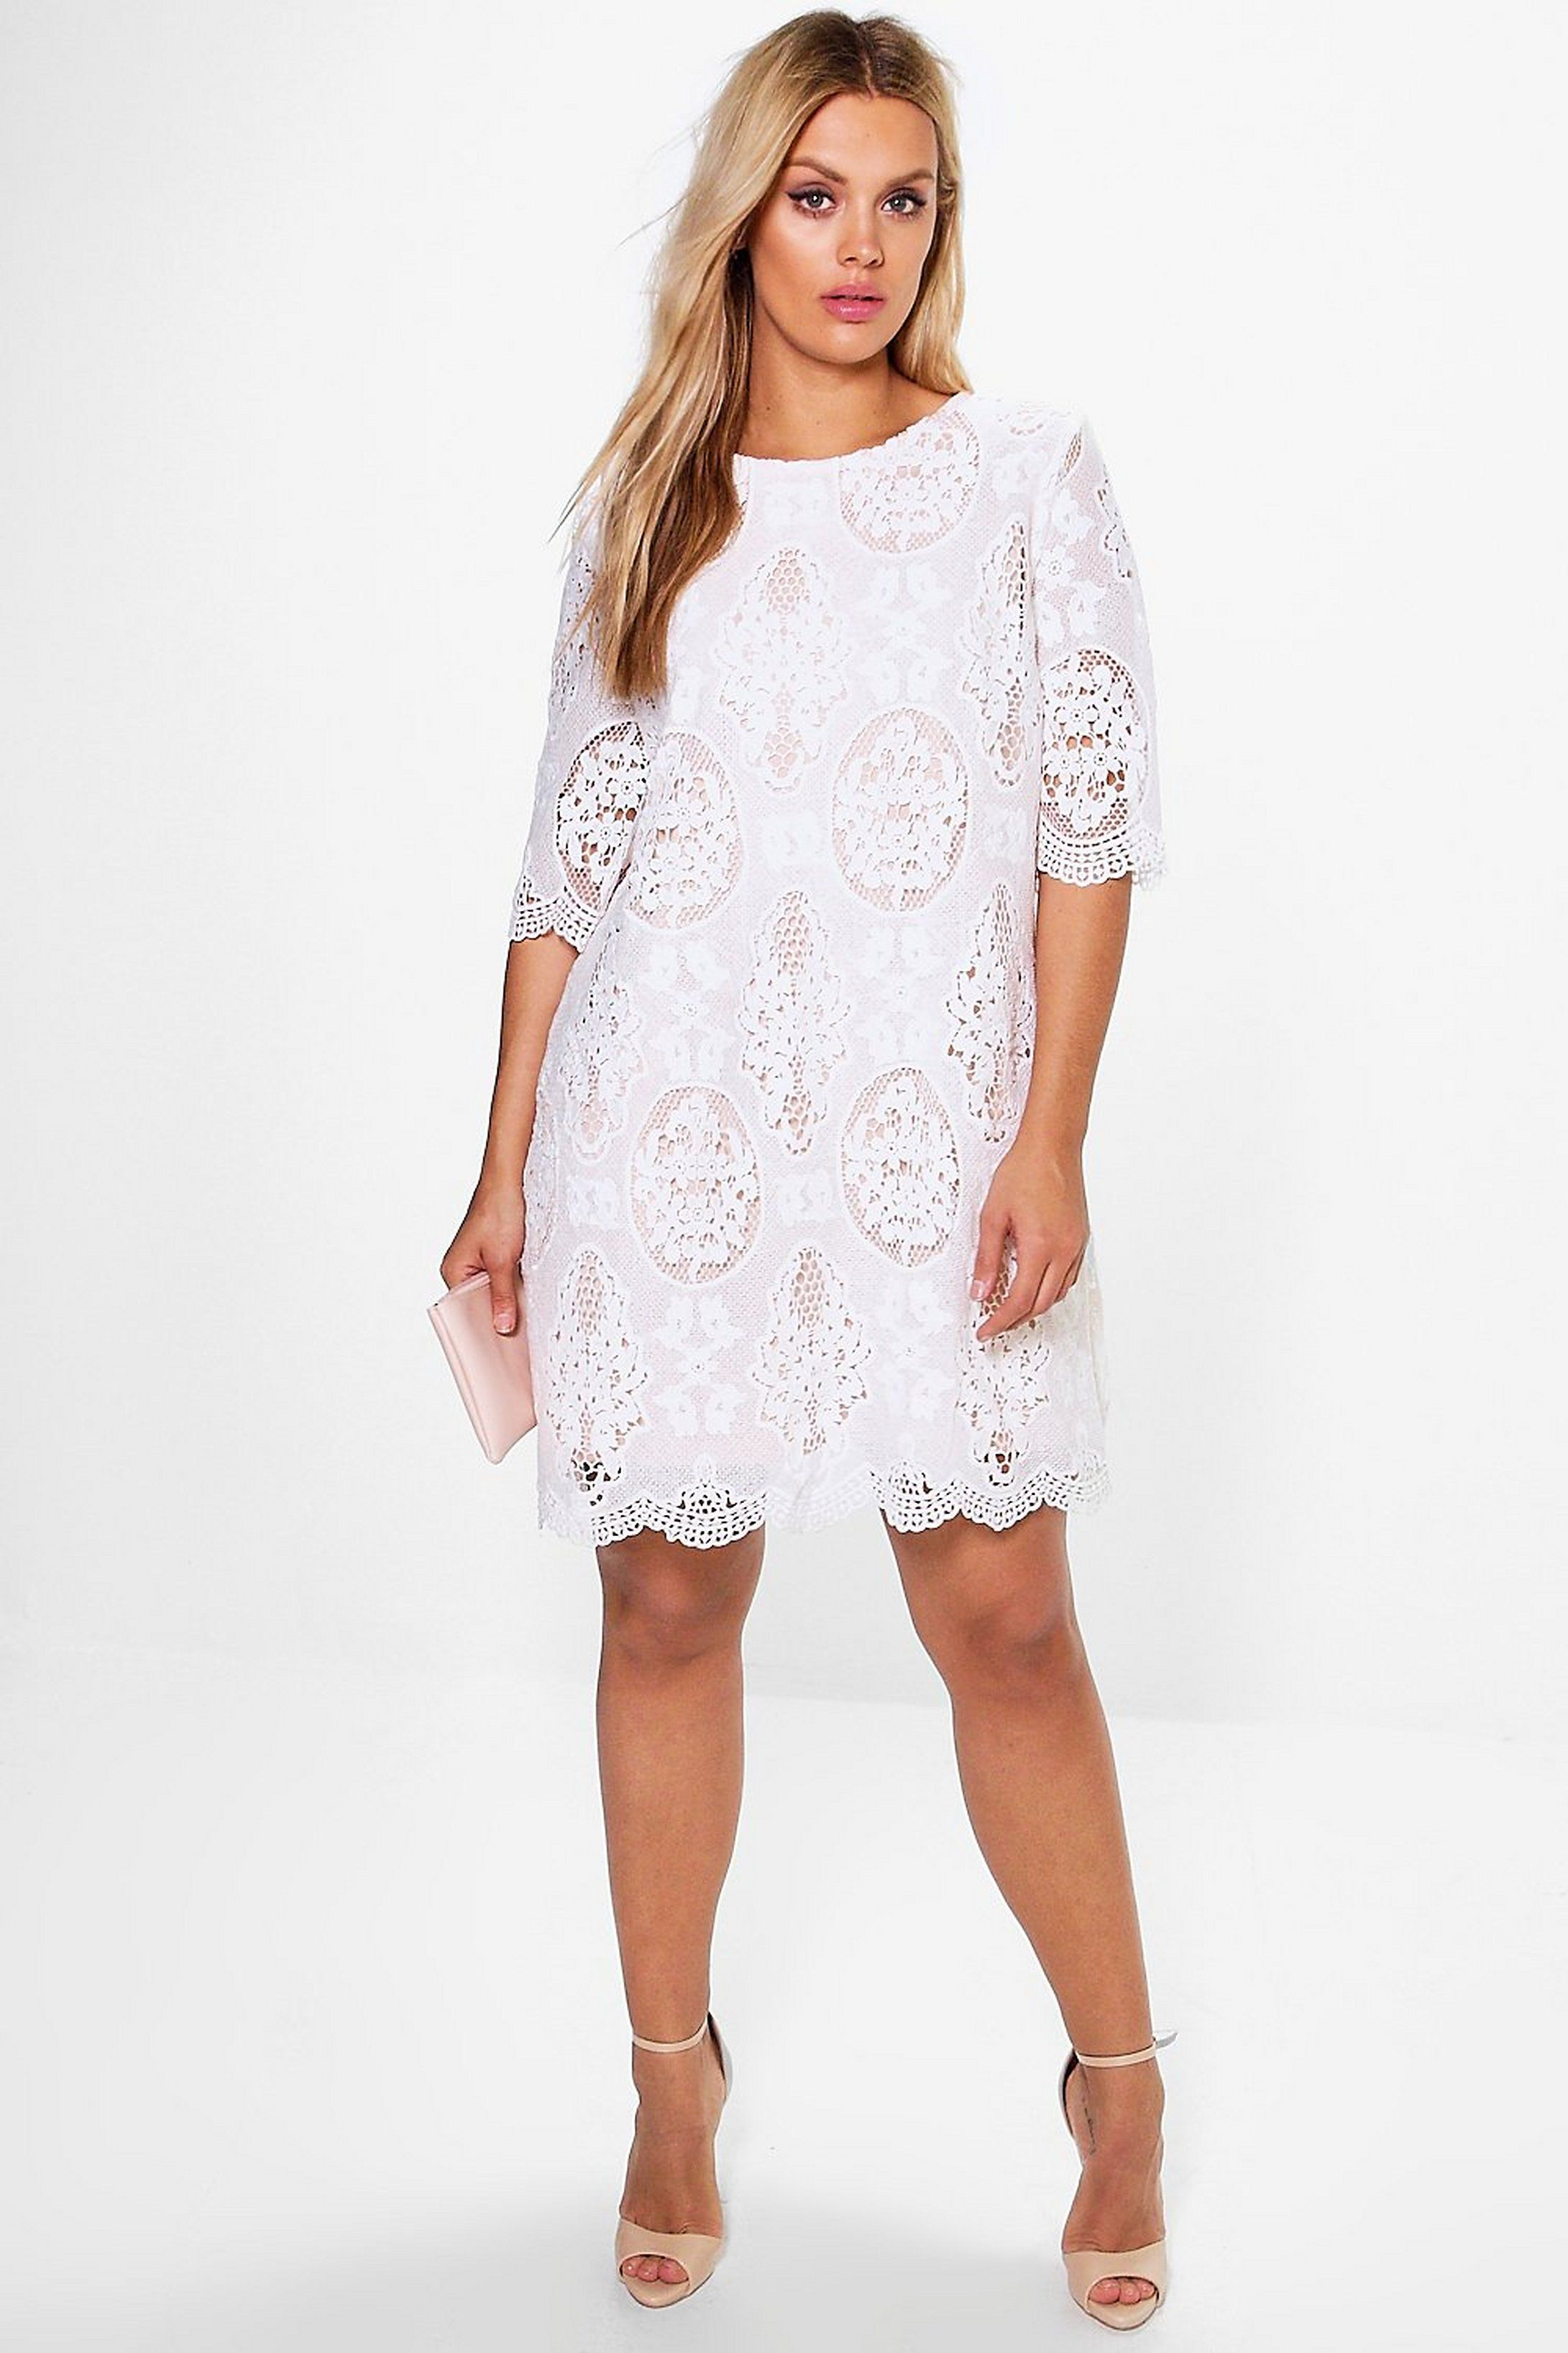 Plus All Over Lace Shift Dress Boohoo Lace Shift Dress Rehearsal Dinner Dresses Shift Dress [ 3272 x 2181 Pixel ]